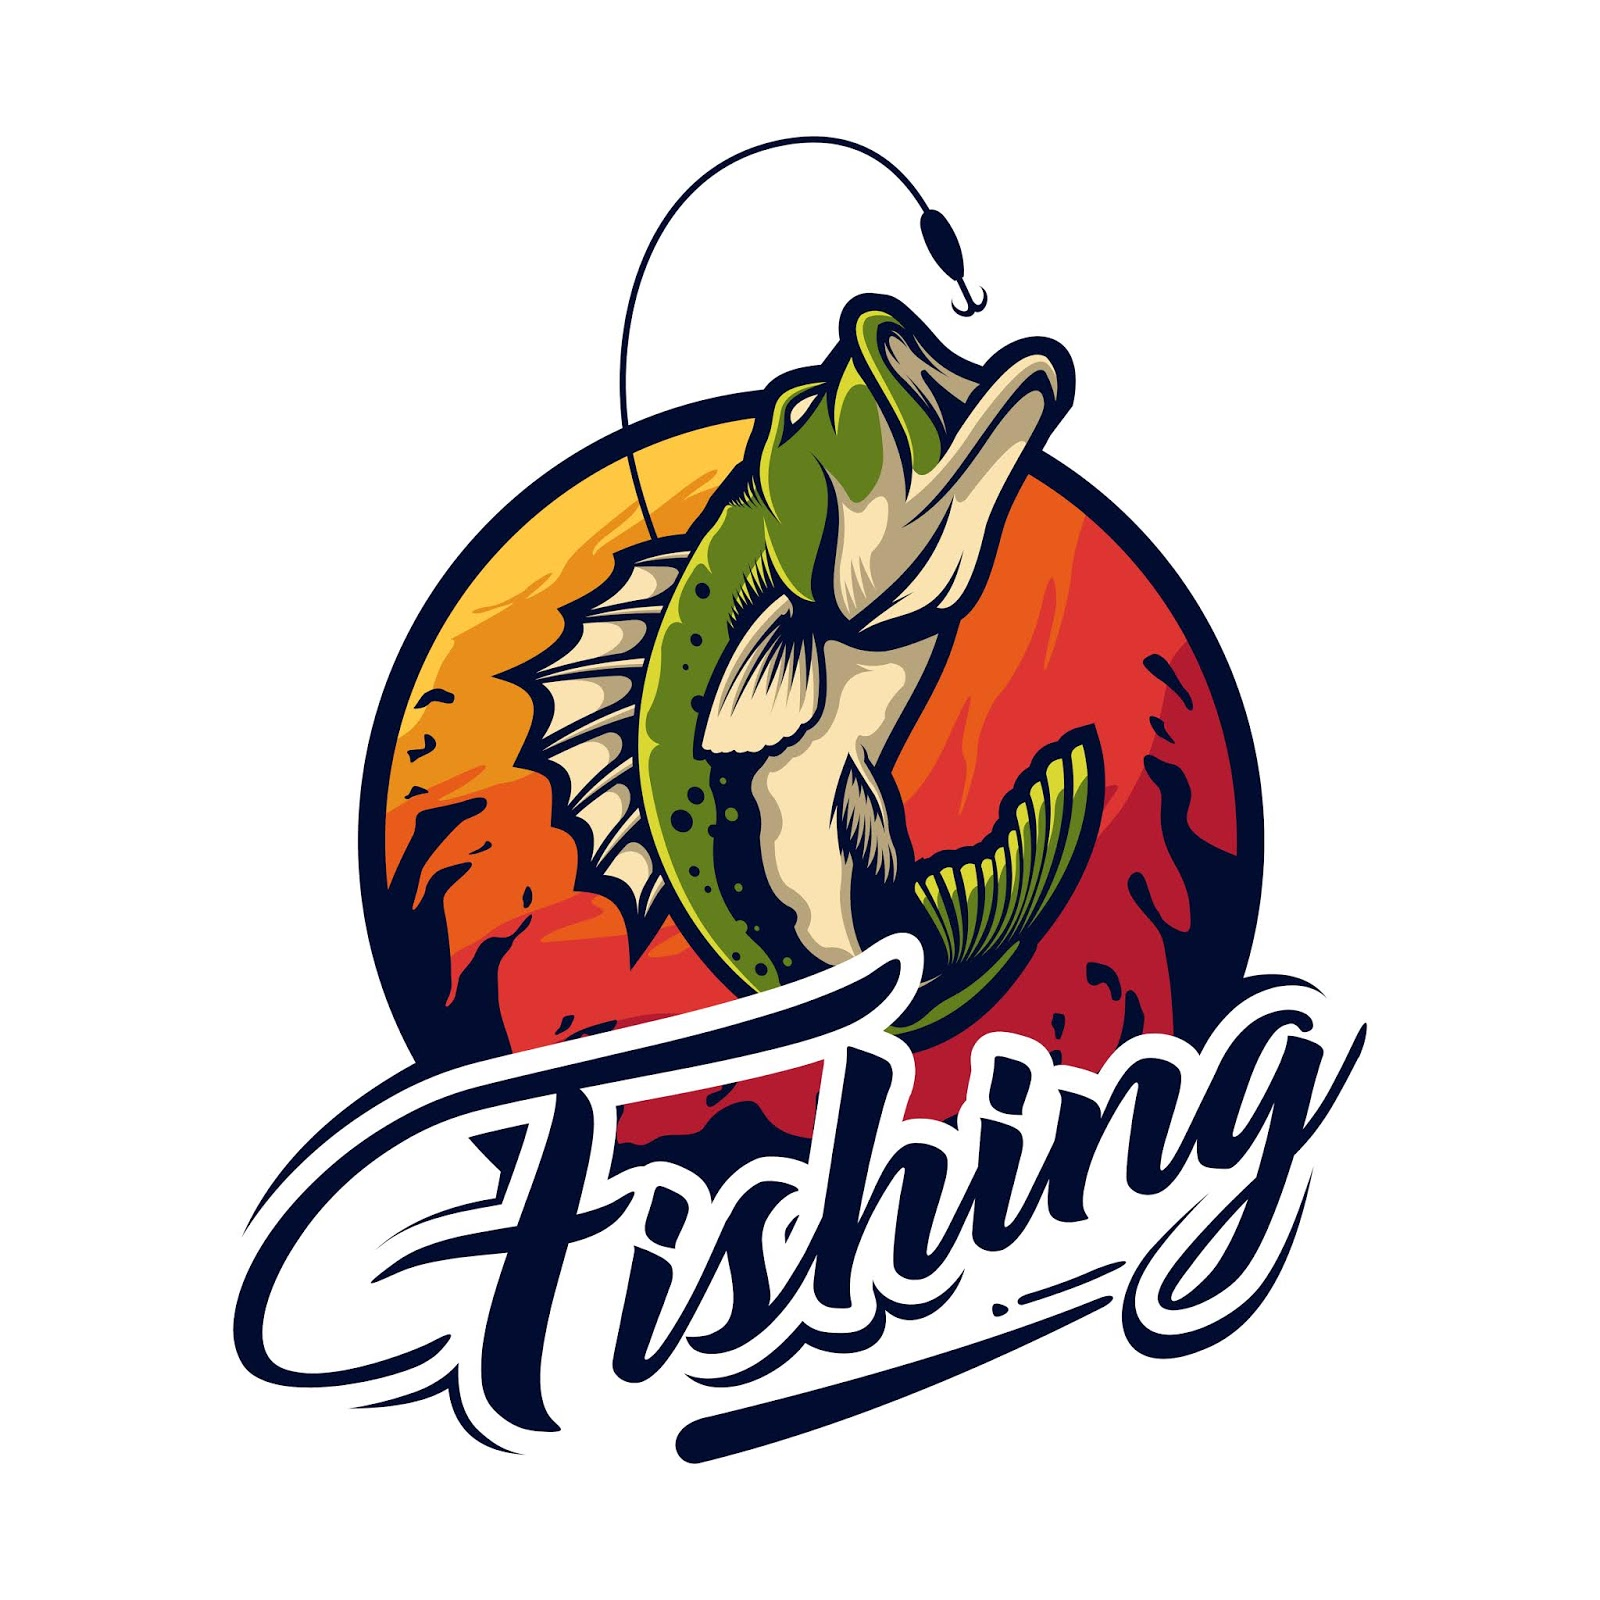 Fishing Logo Design Free Download Vector CDR, AI, EPS and PNG Formats